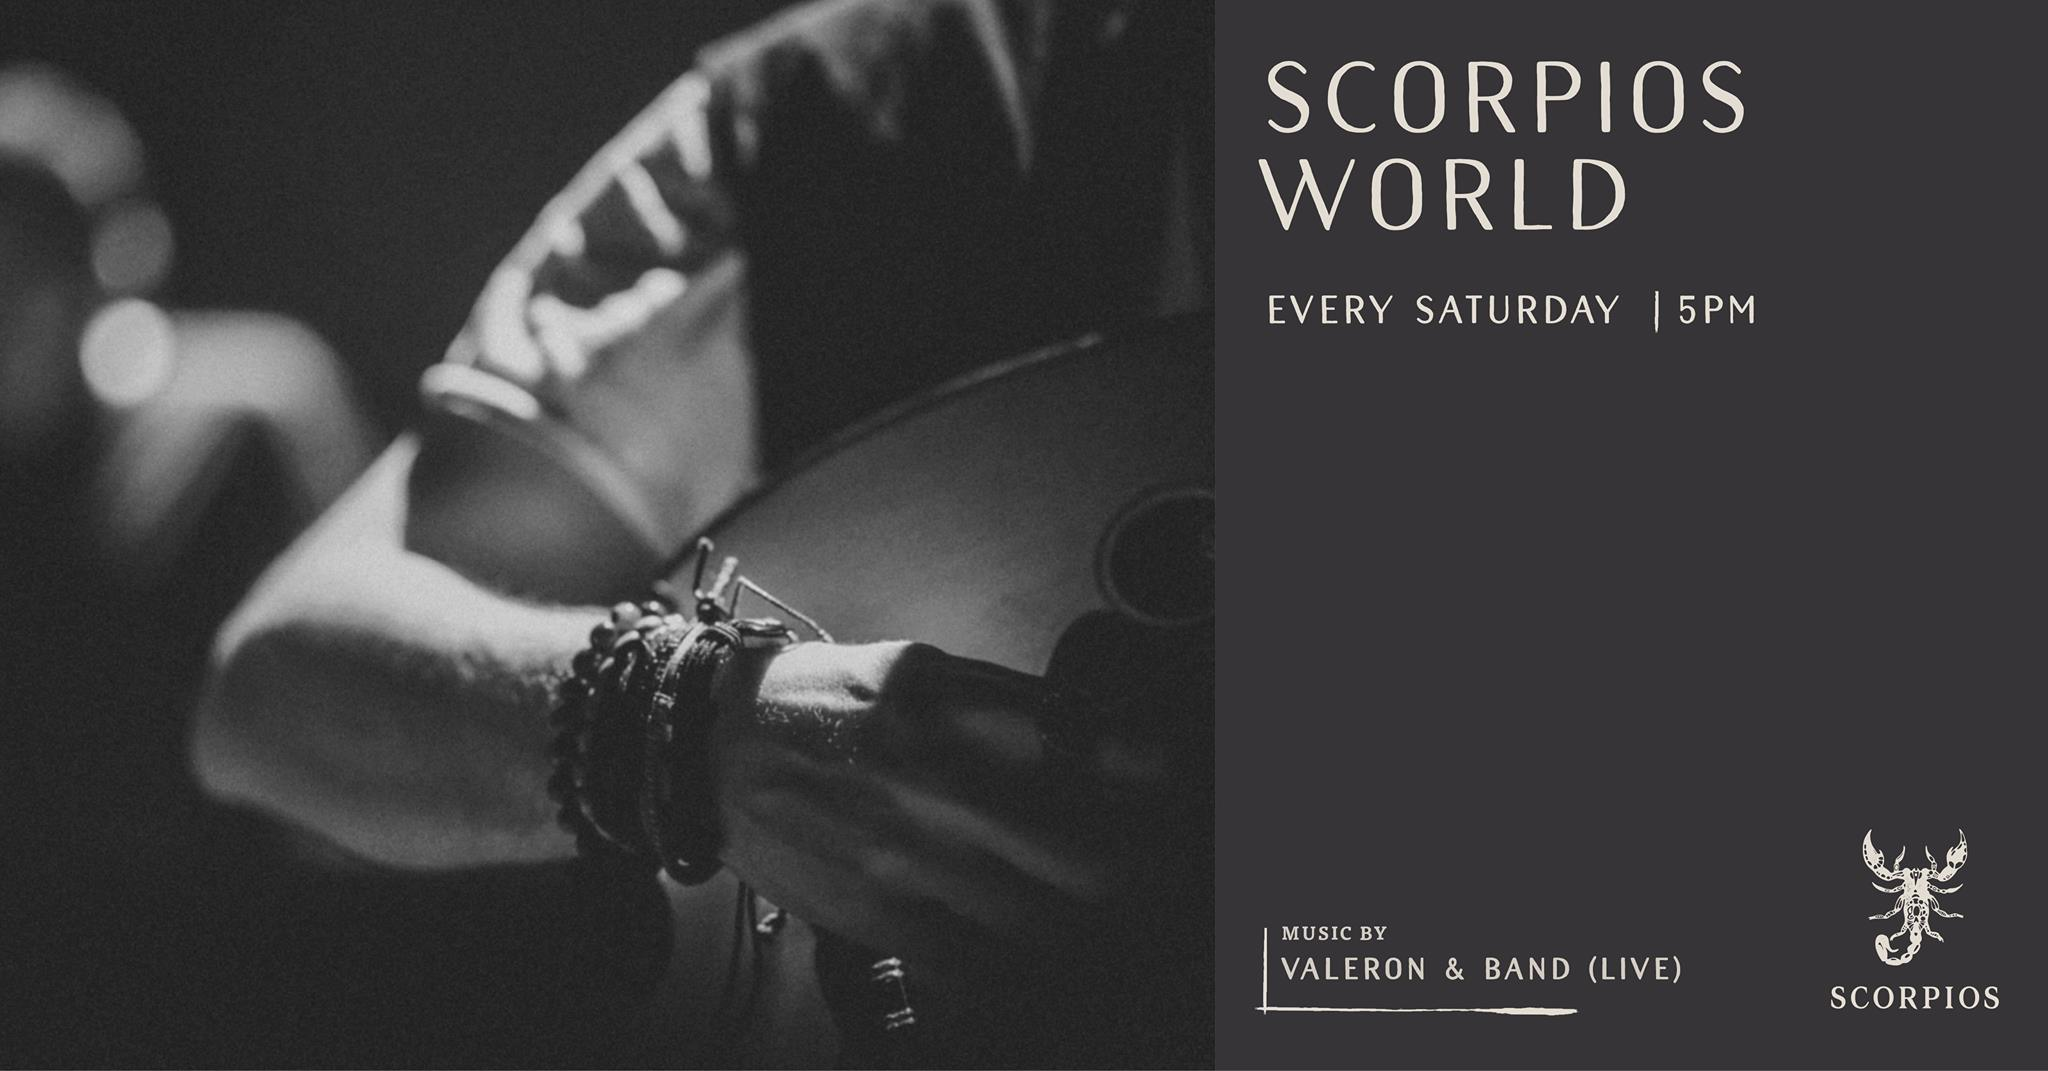 SCORPIOS WORLD WITH VALERON & BAND (LIVE)